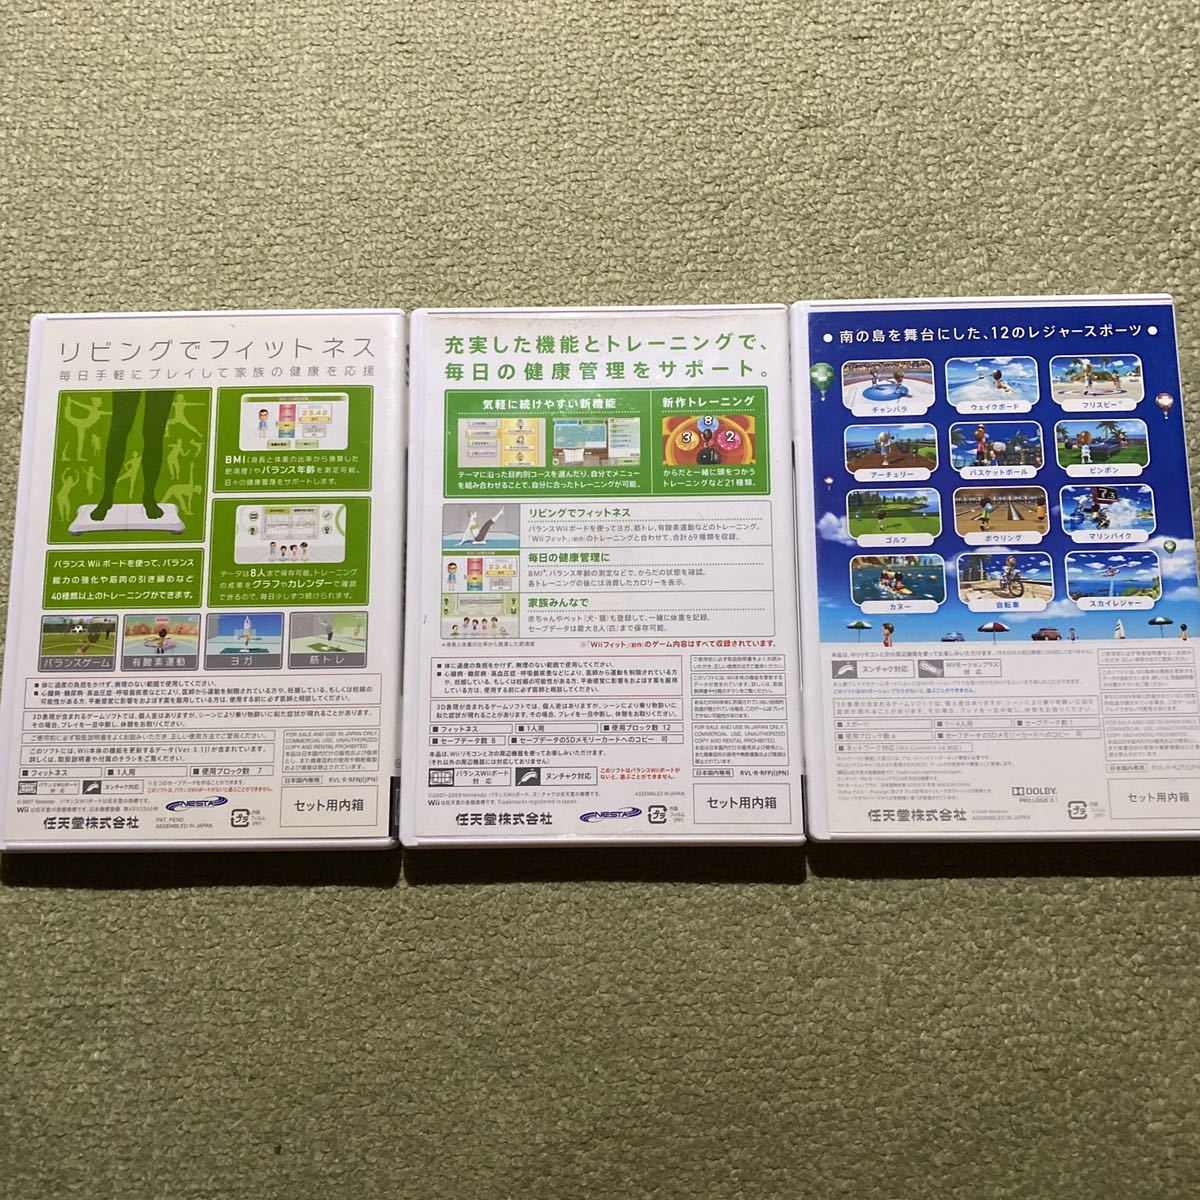 Wii Wii Fit Wii Fit Plus Wii Sportsリゾート